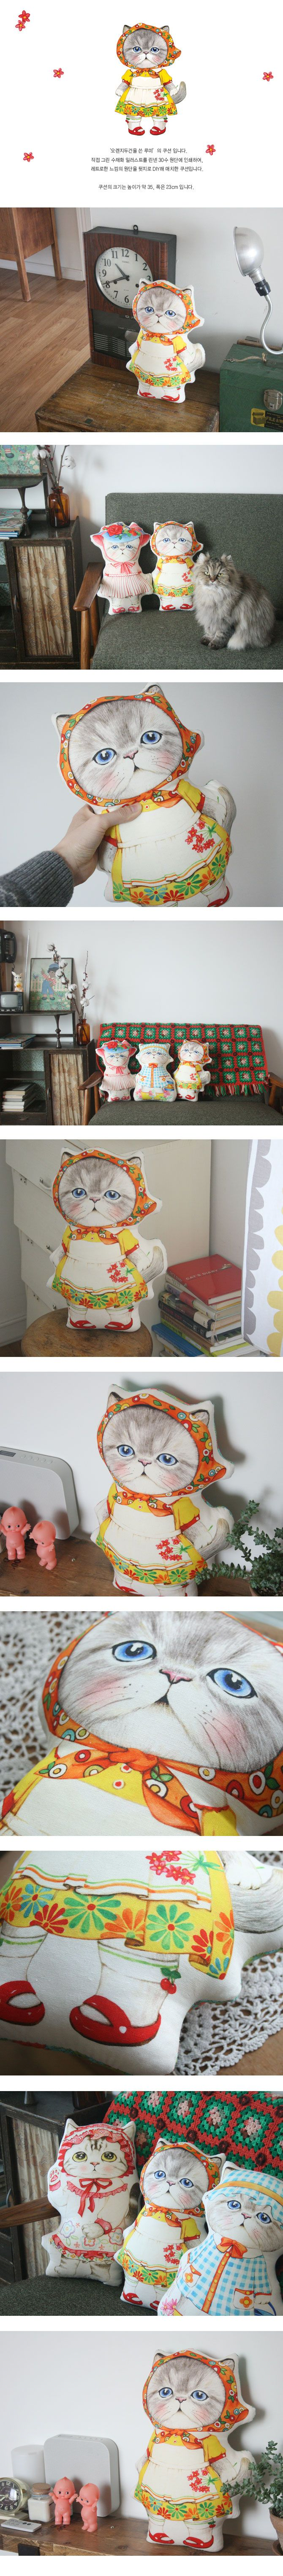 Cat persian uncle cat himalayan fabric doll plush pillow cushion pet kitten kitty